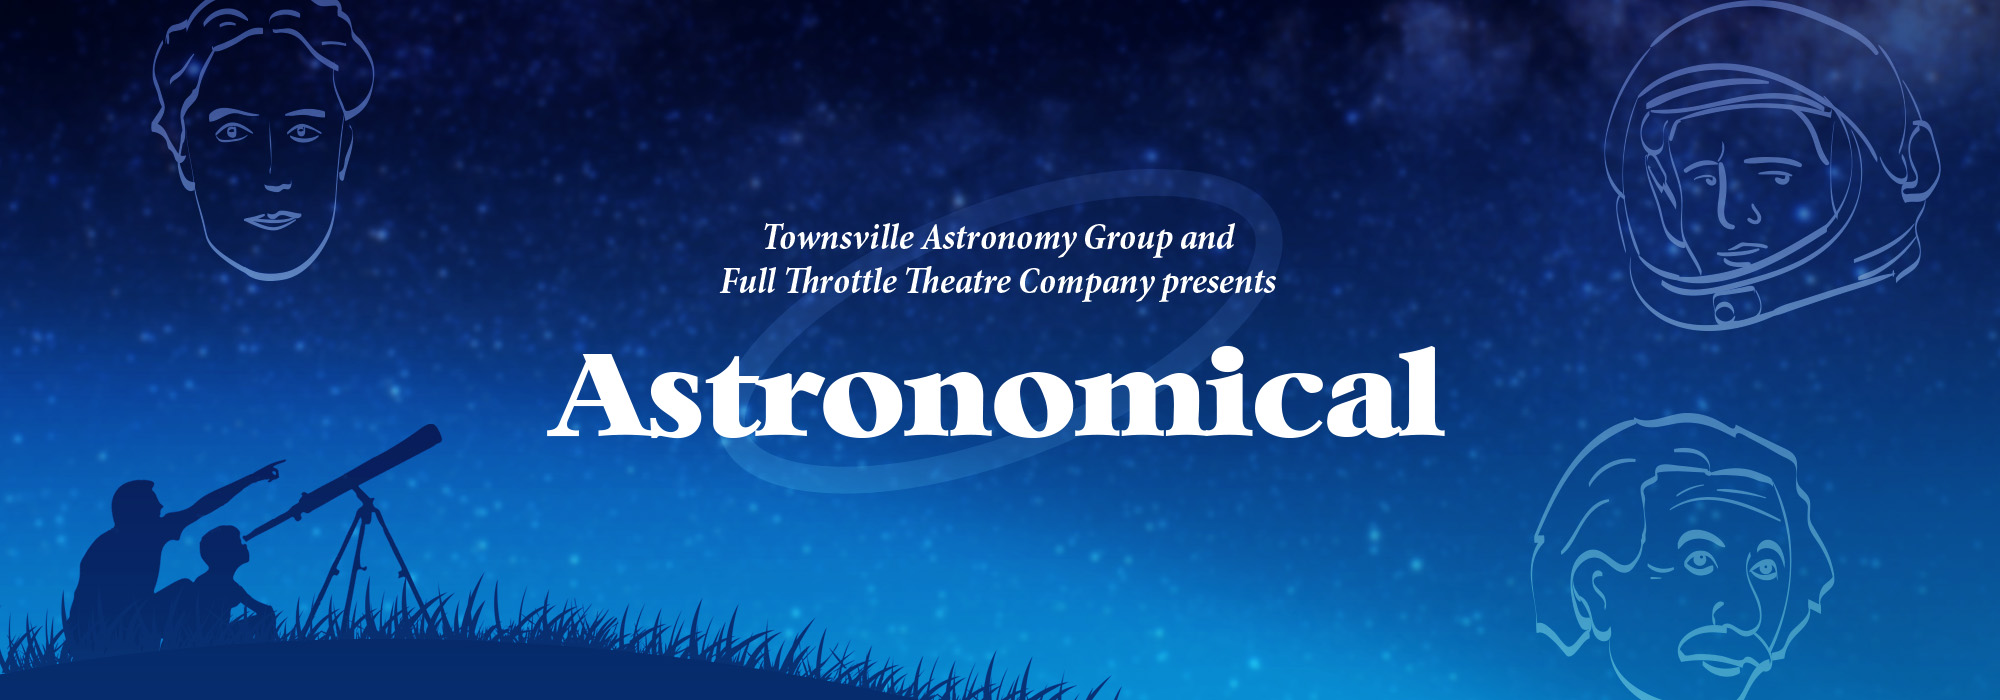 Astronomical - Full Throttle Theatre Production